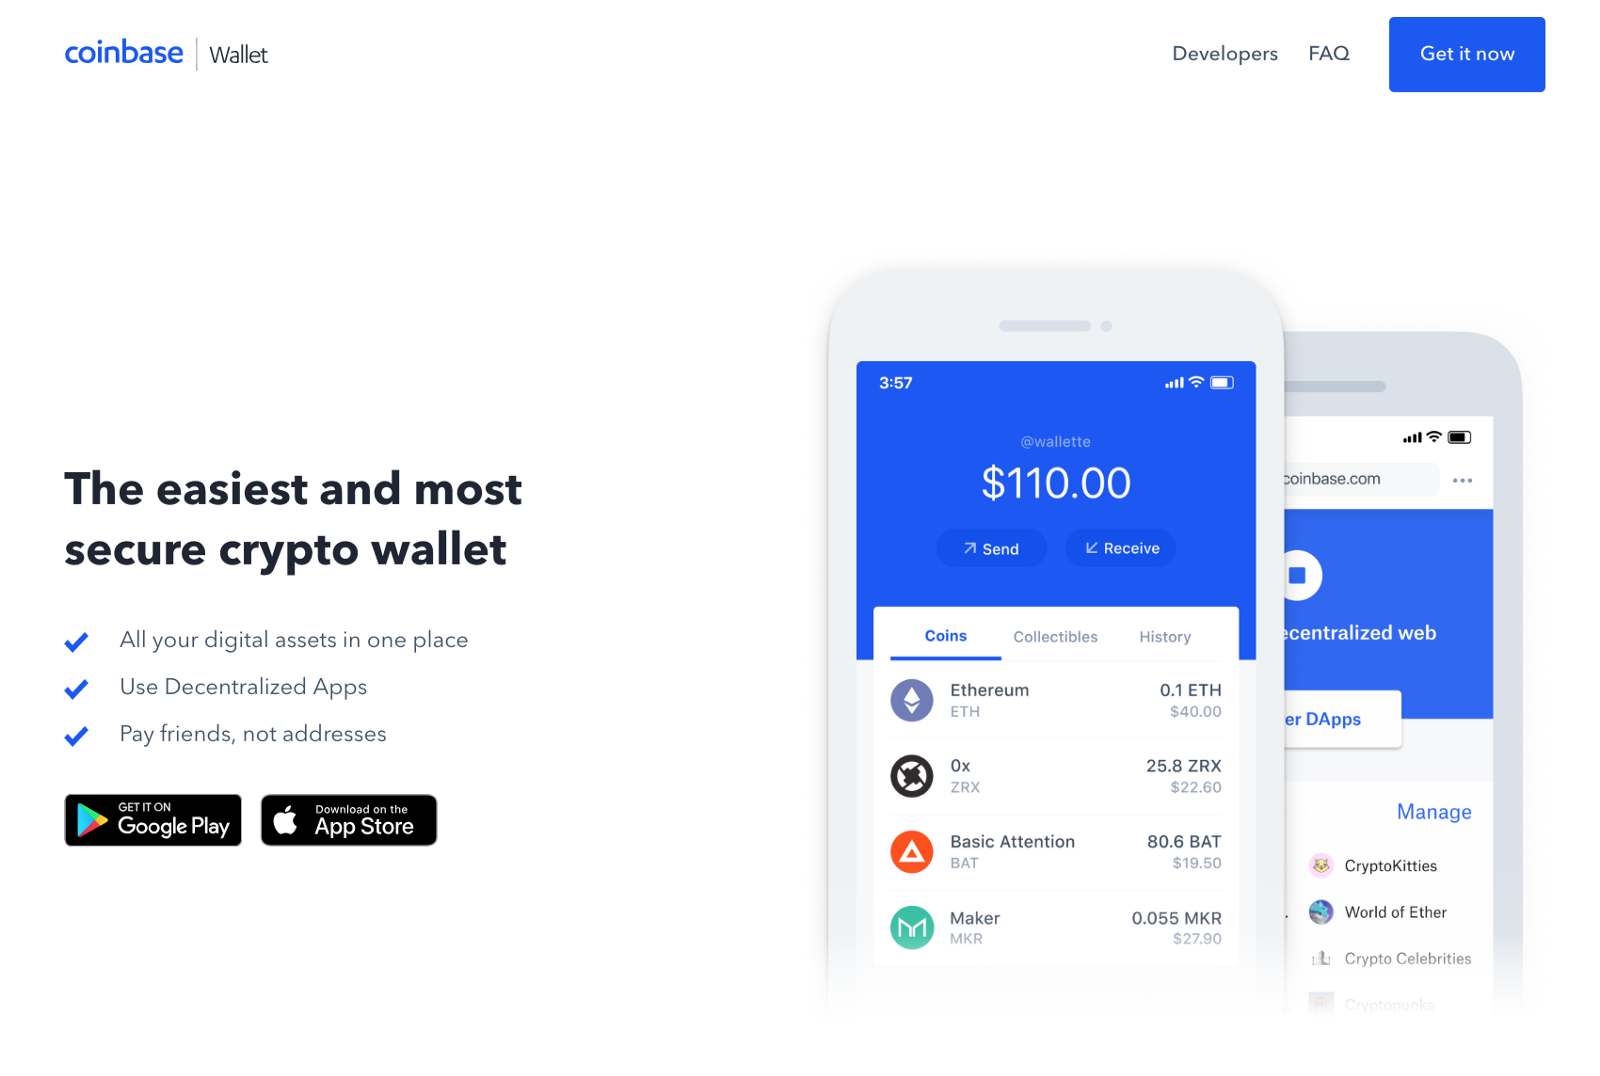 How to Use Coinbase Wallet with Faast and Swap Cryptocurrency on